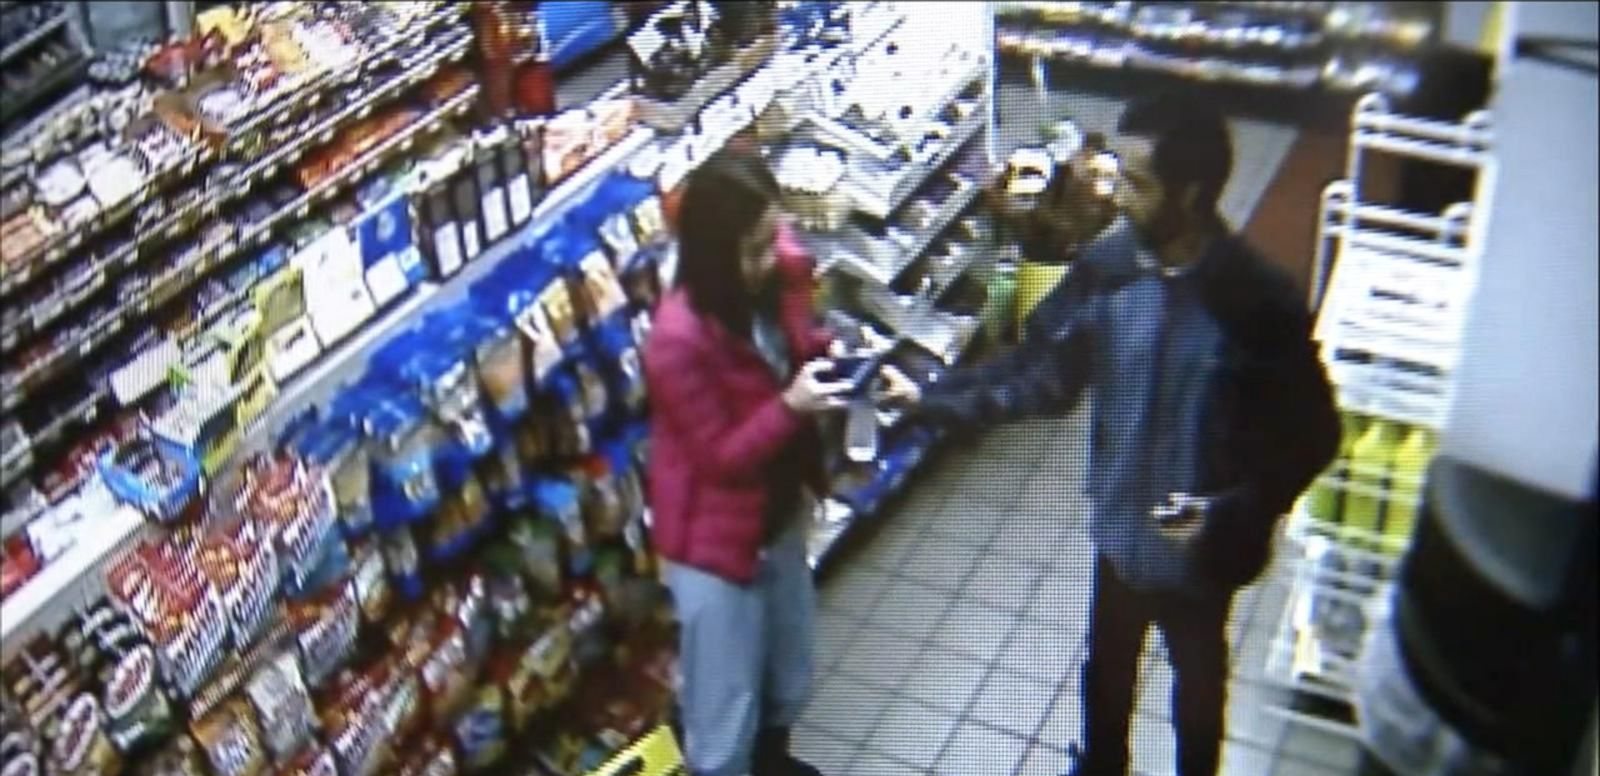 VIDEO: Gas Station Clerk Helps Stop Alleged Kidnapping